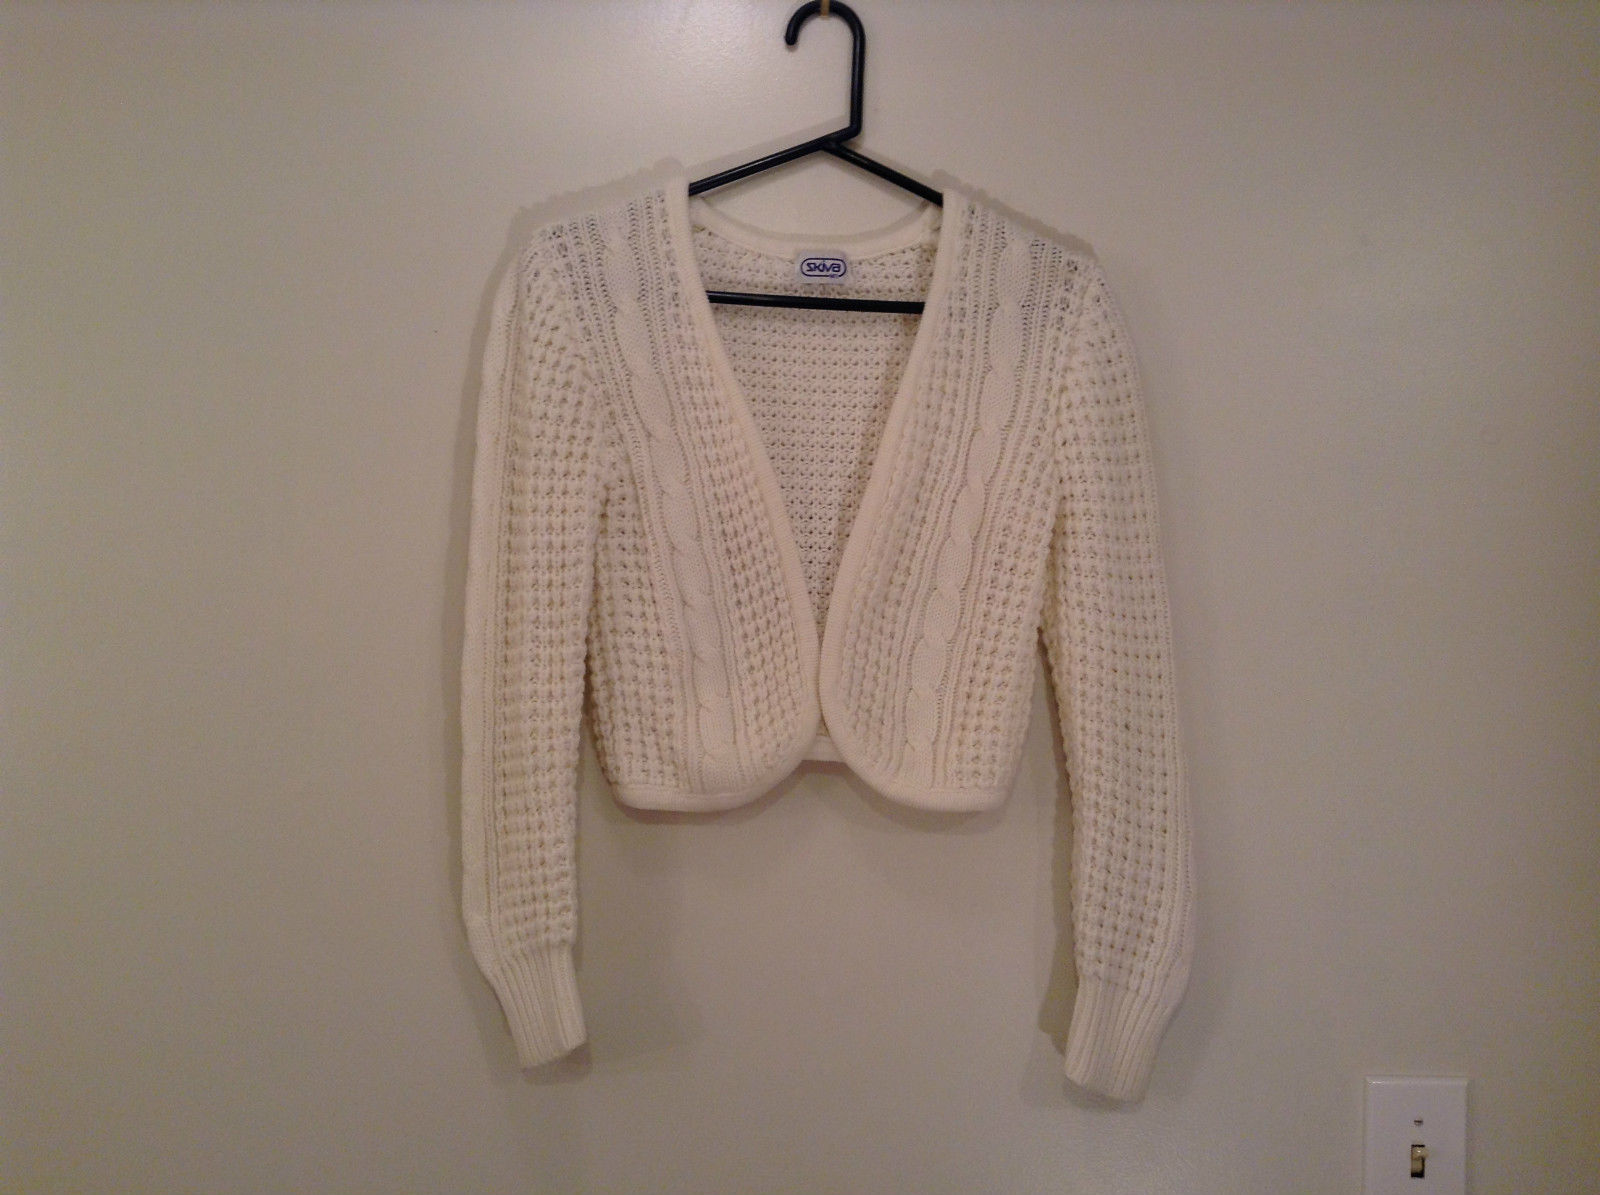 White SKIVA Knitted Bolero Sweater No Closure No Size Tag Measurements Below